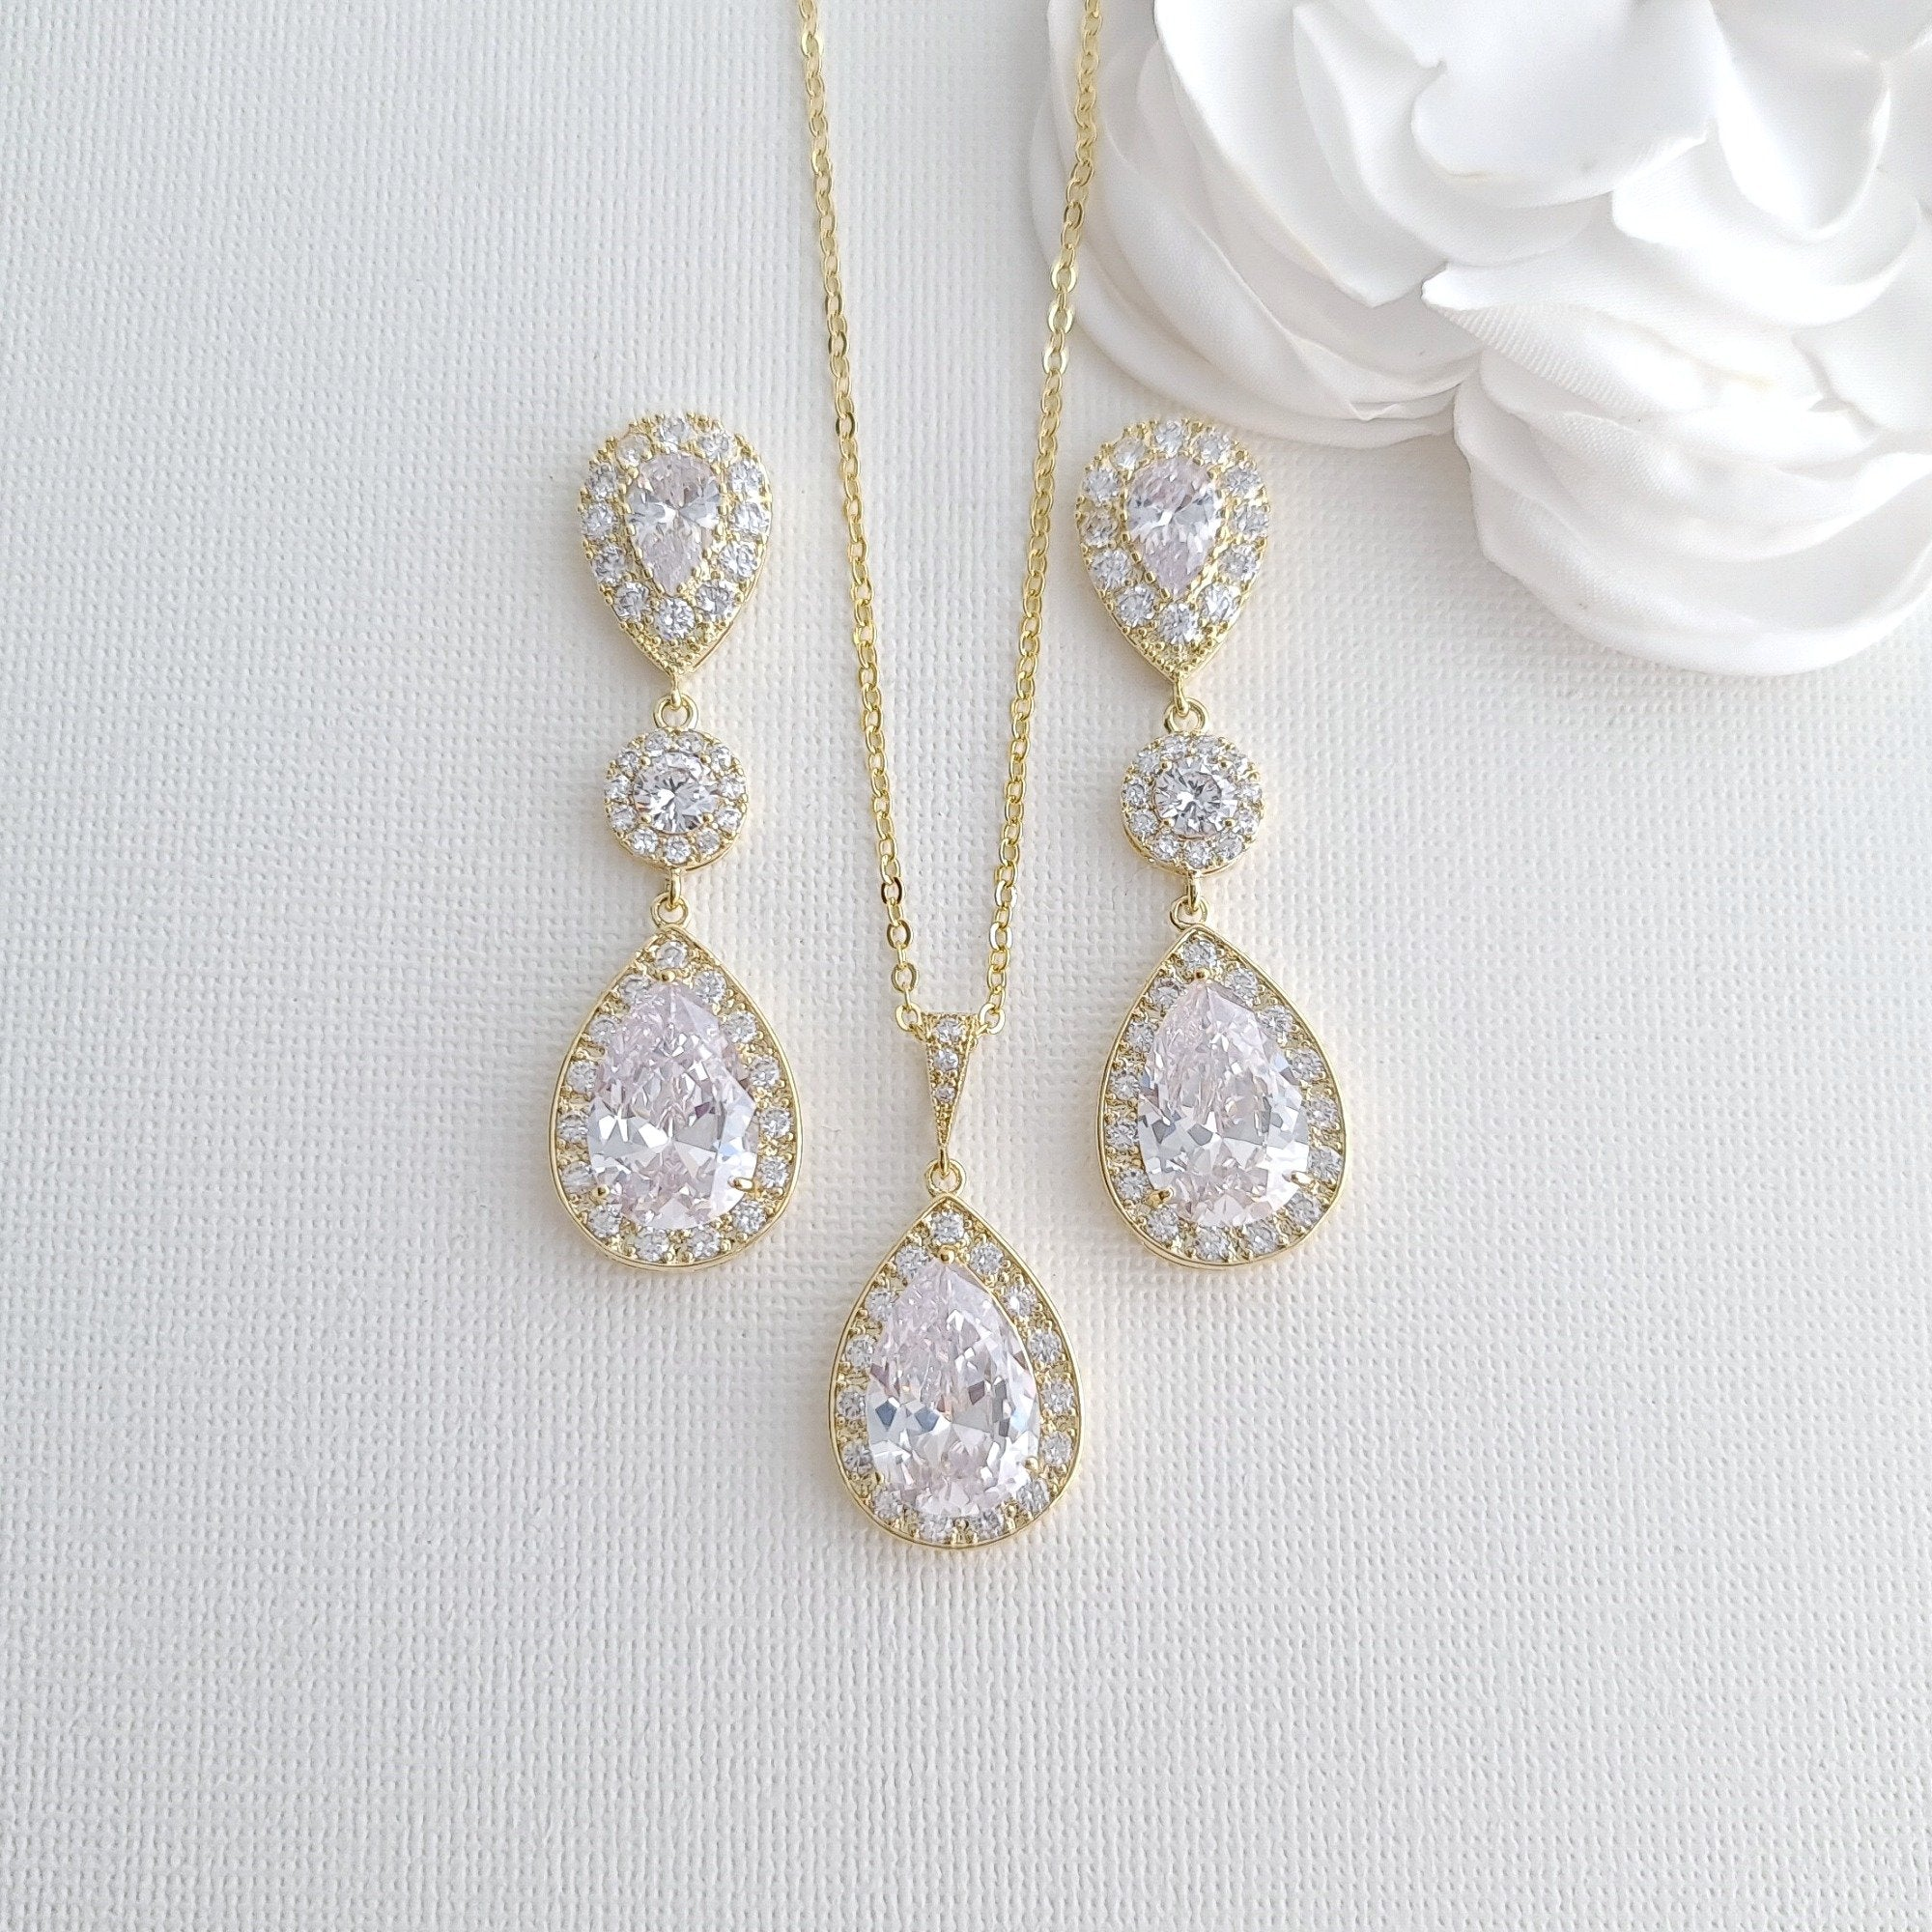 Gold Wedding Jewelry Sets for Brides With Earrings Necklace Together- Penelope - PoetryDesigns